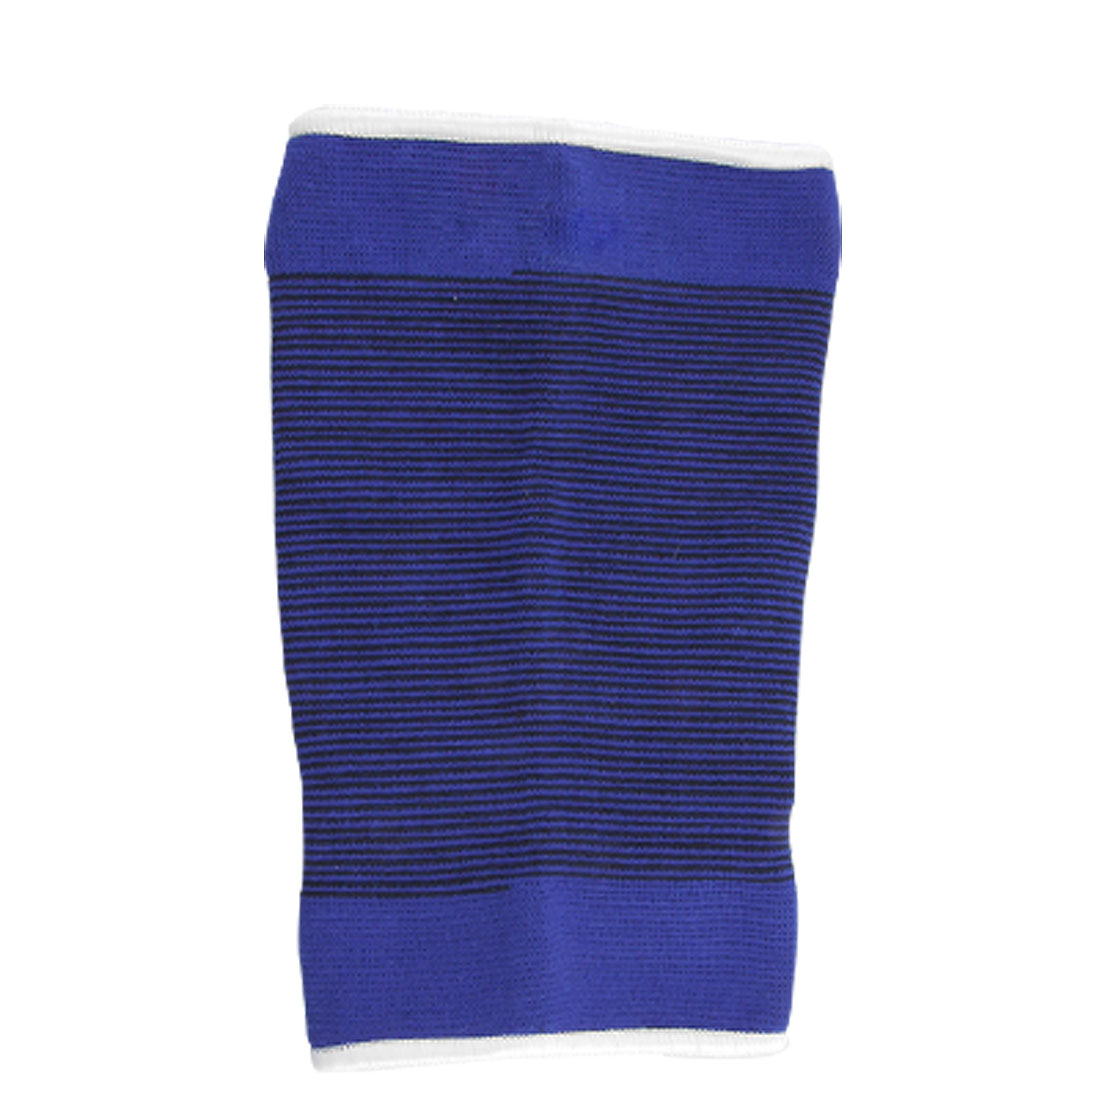 Protective Sports Bandage Brace Thigh Support Blue 1PCS